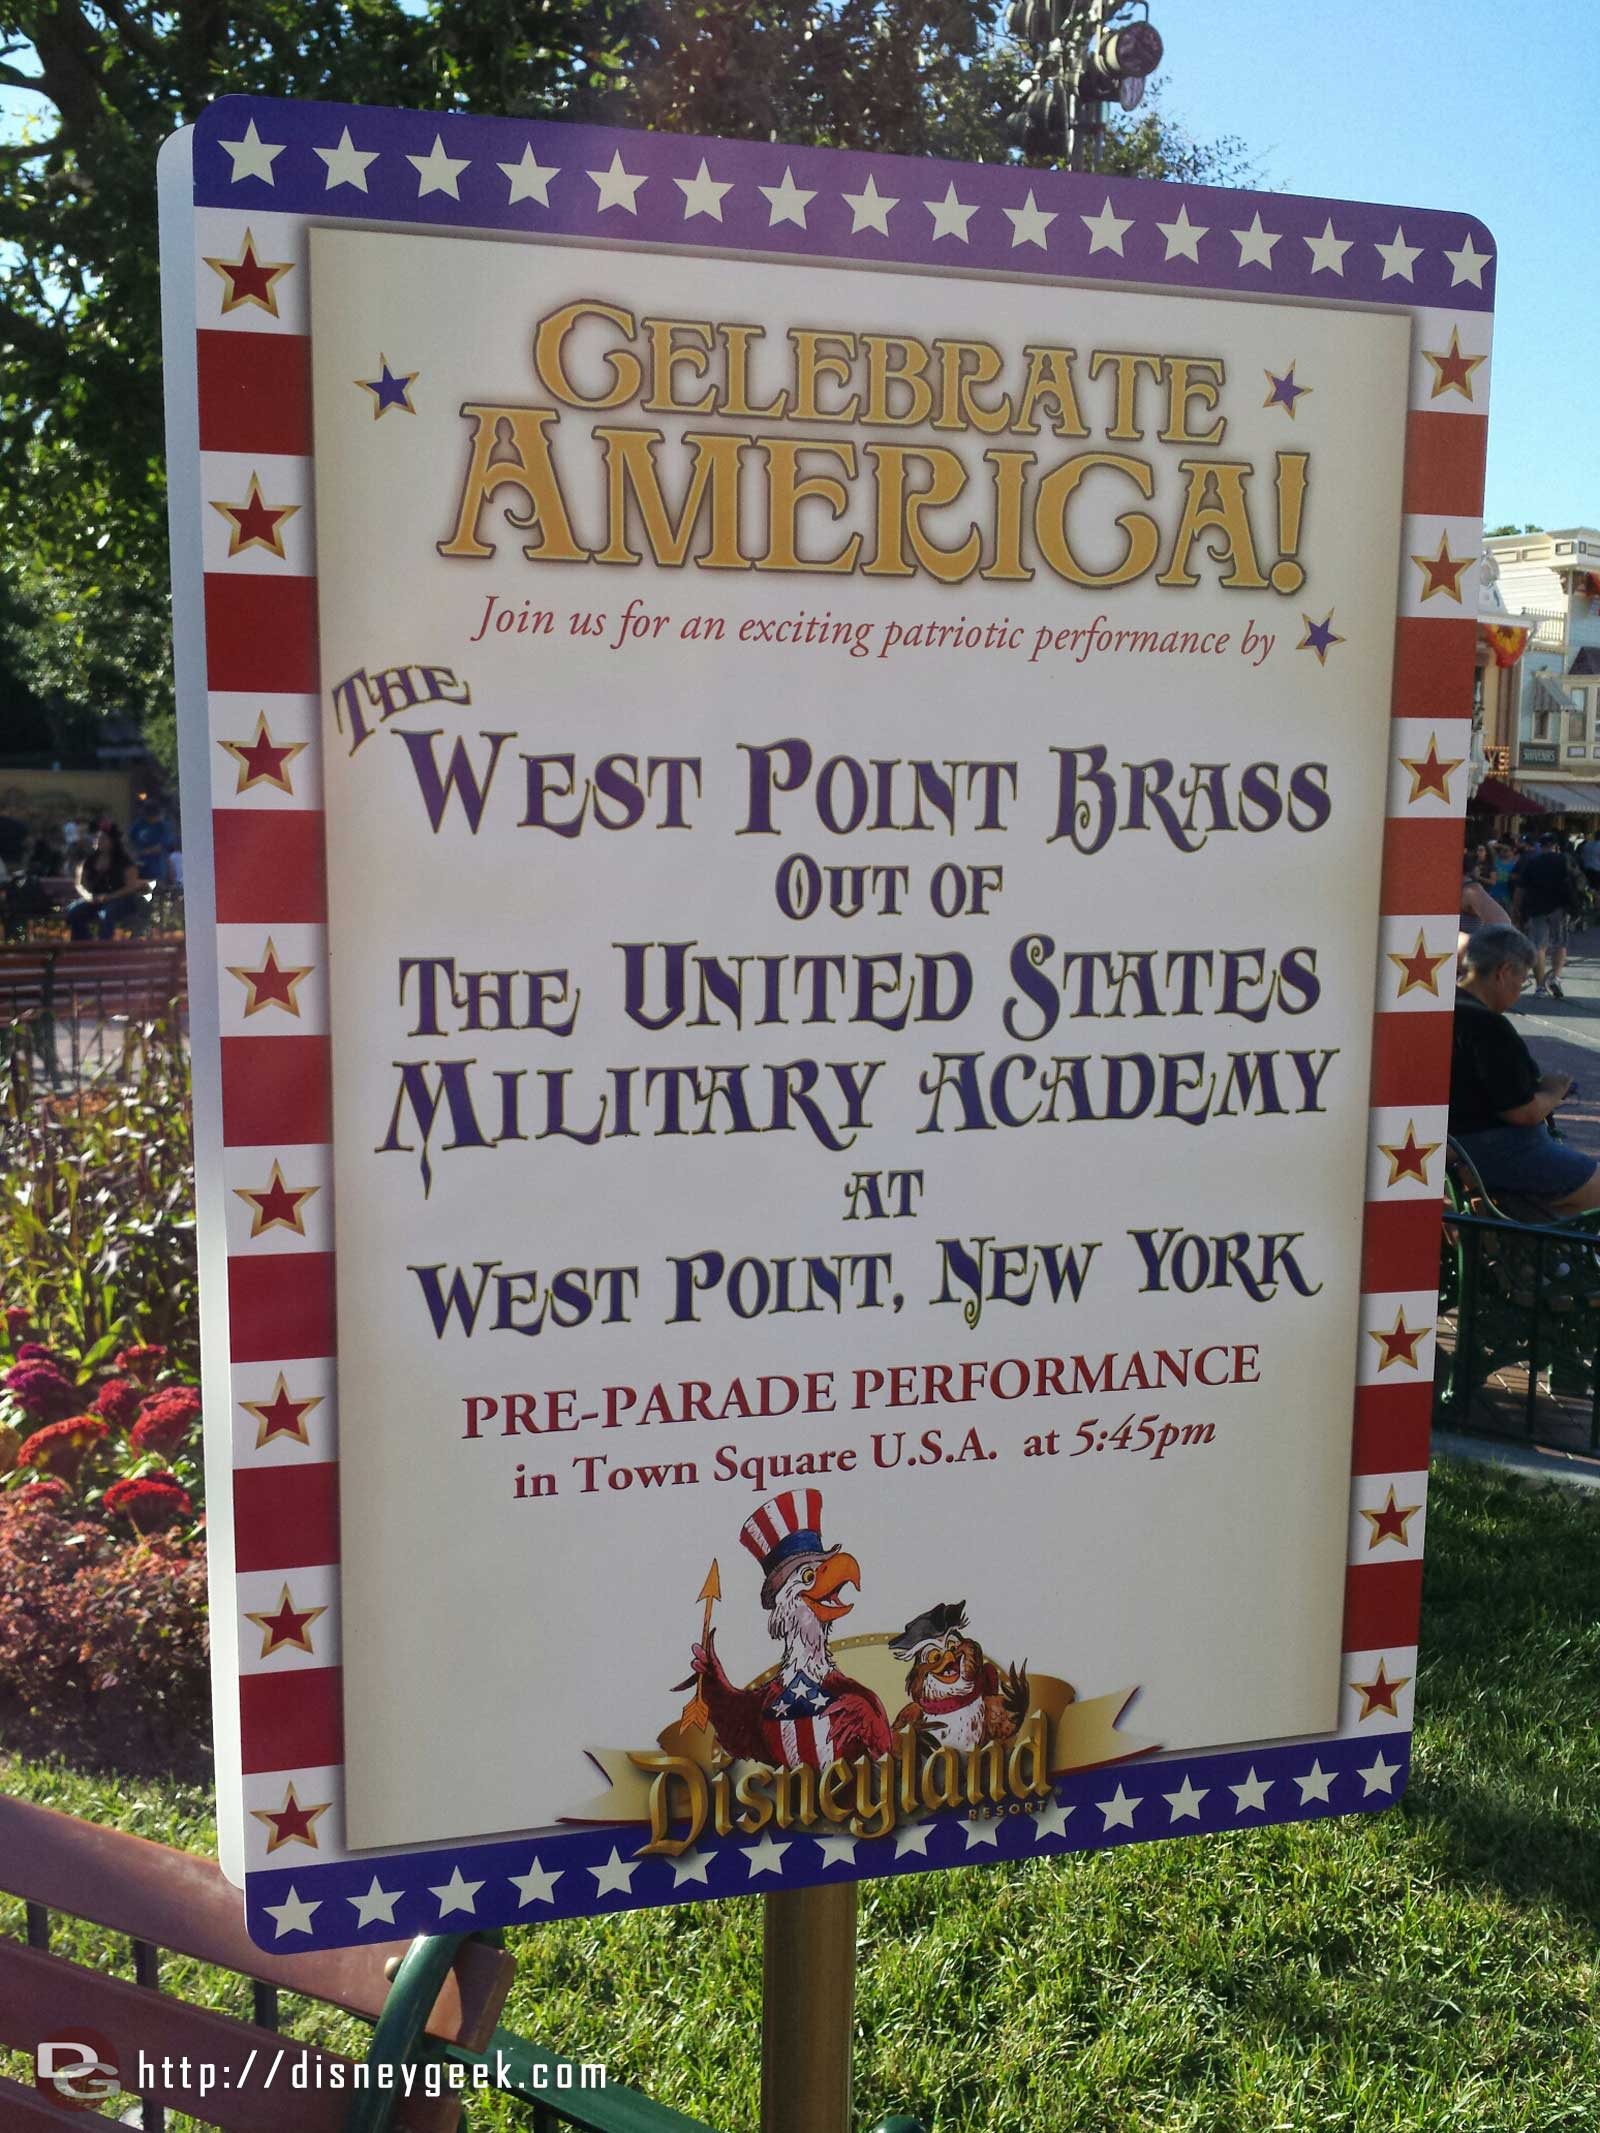 At 5:45pm a band from West Point will be performing in Town Square #Disneyland